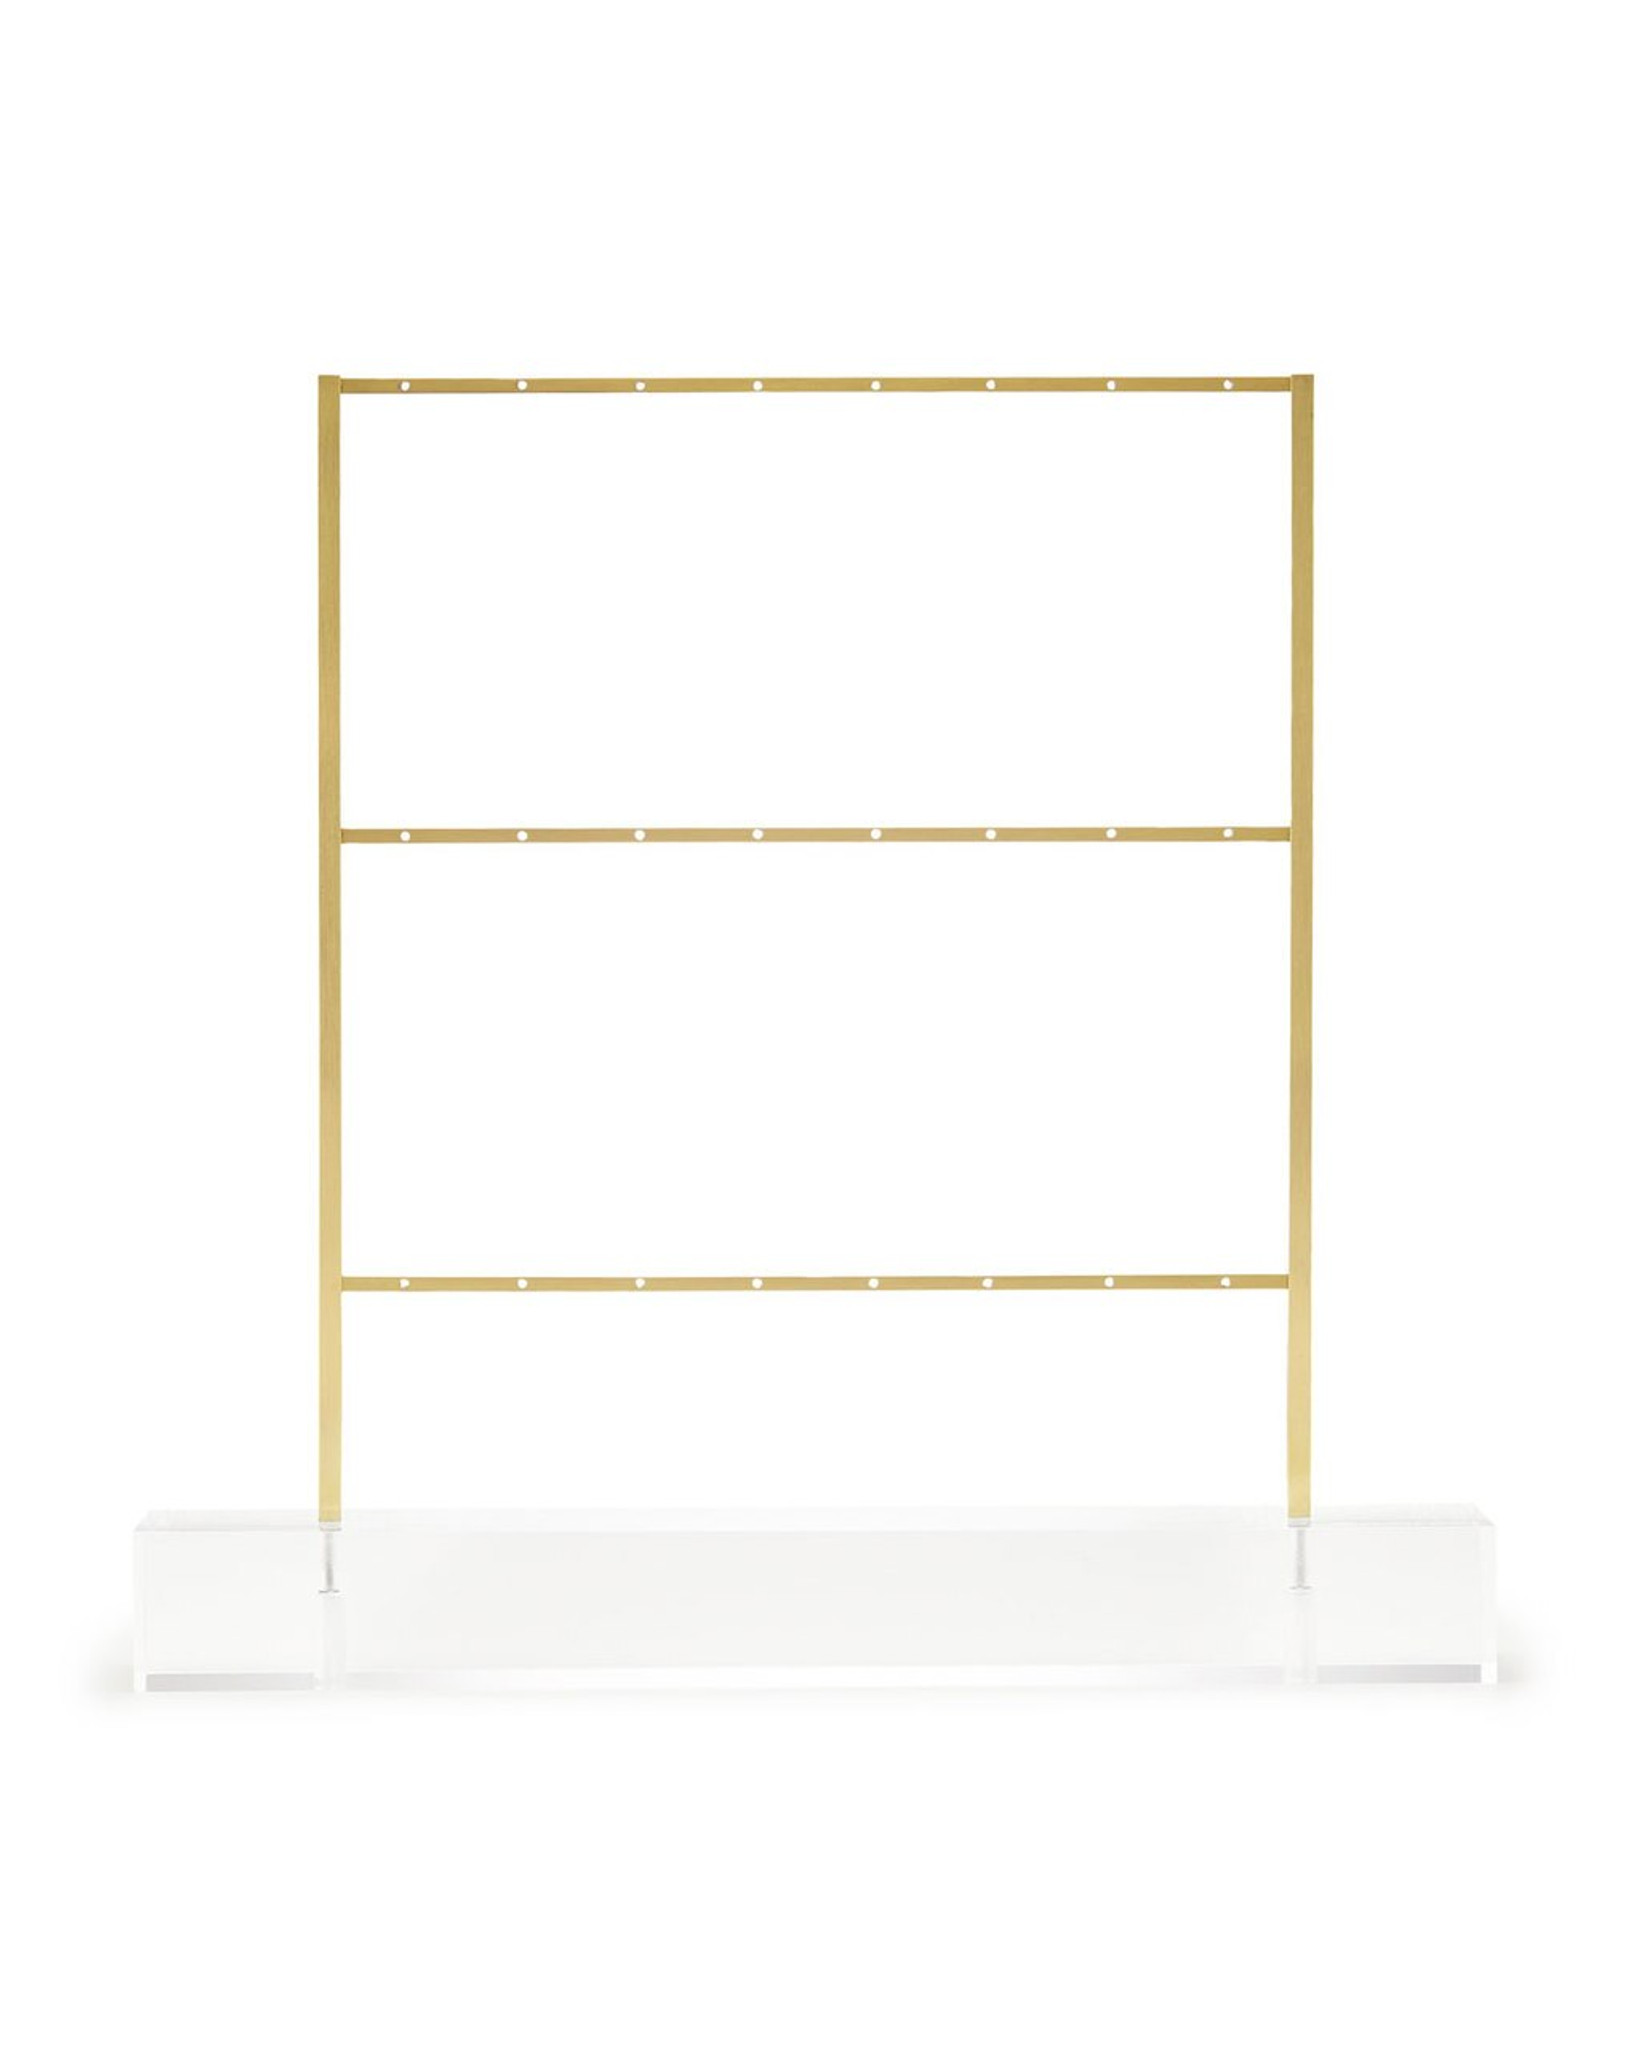 kendra scott hanging earring holder jewelry ladder with clear lucite acrylic base gold brass metal